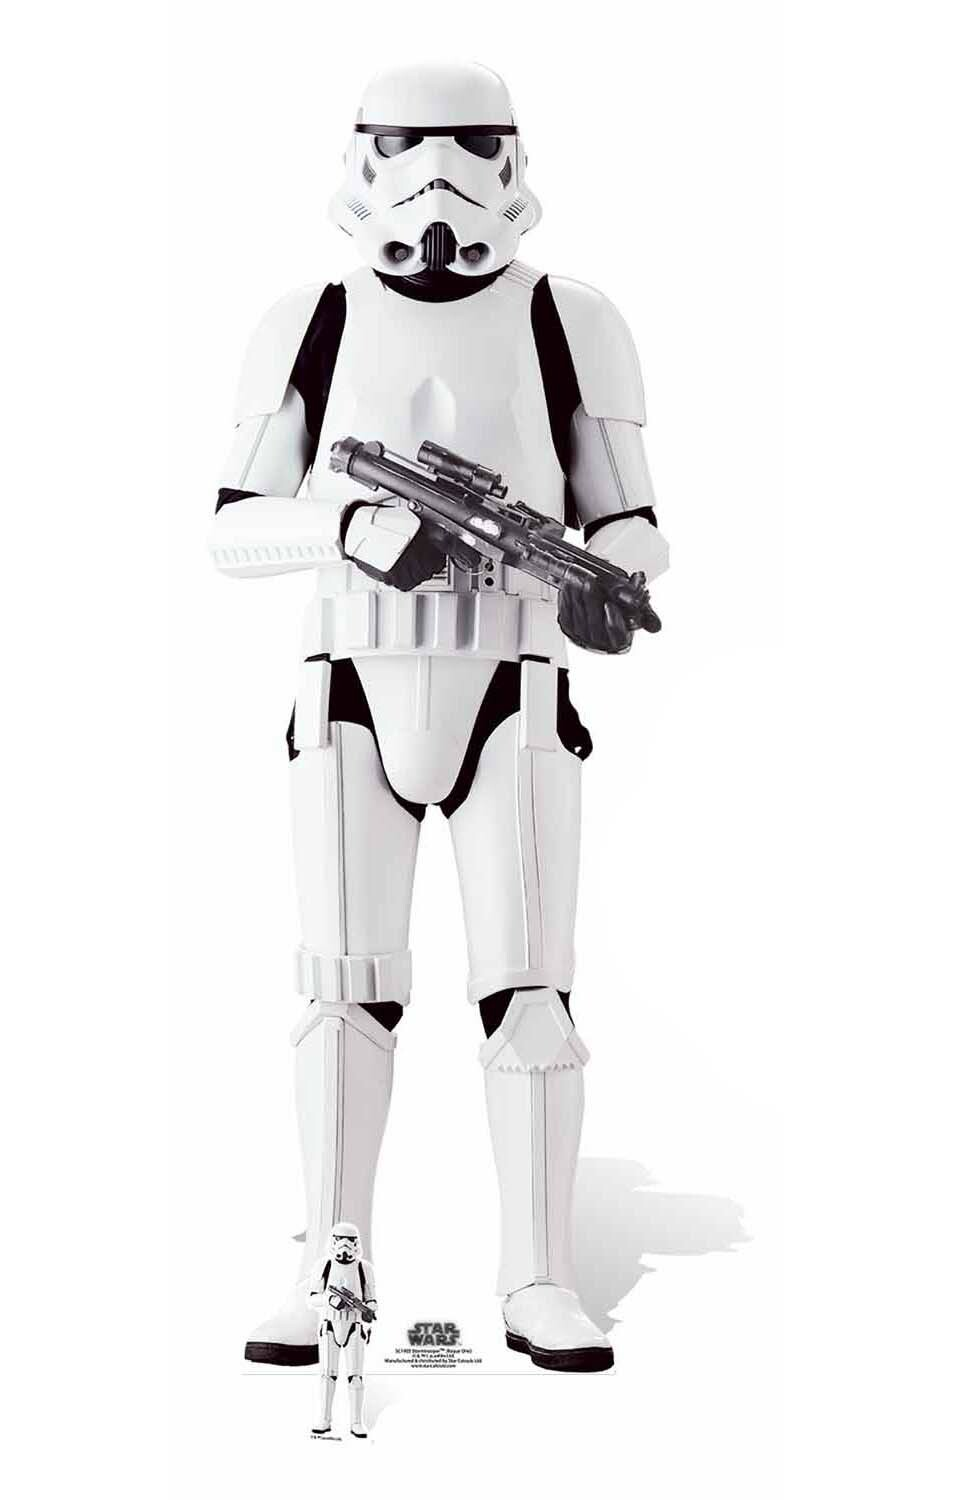 Imperial Stormtrooper Rogue One A Star Wars Story Lifesize Cardboard Cutout